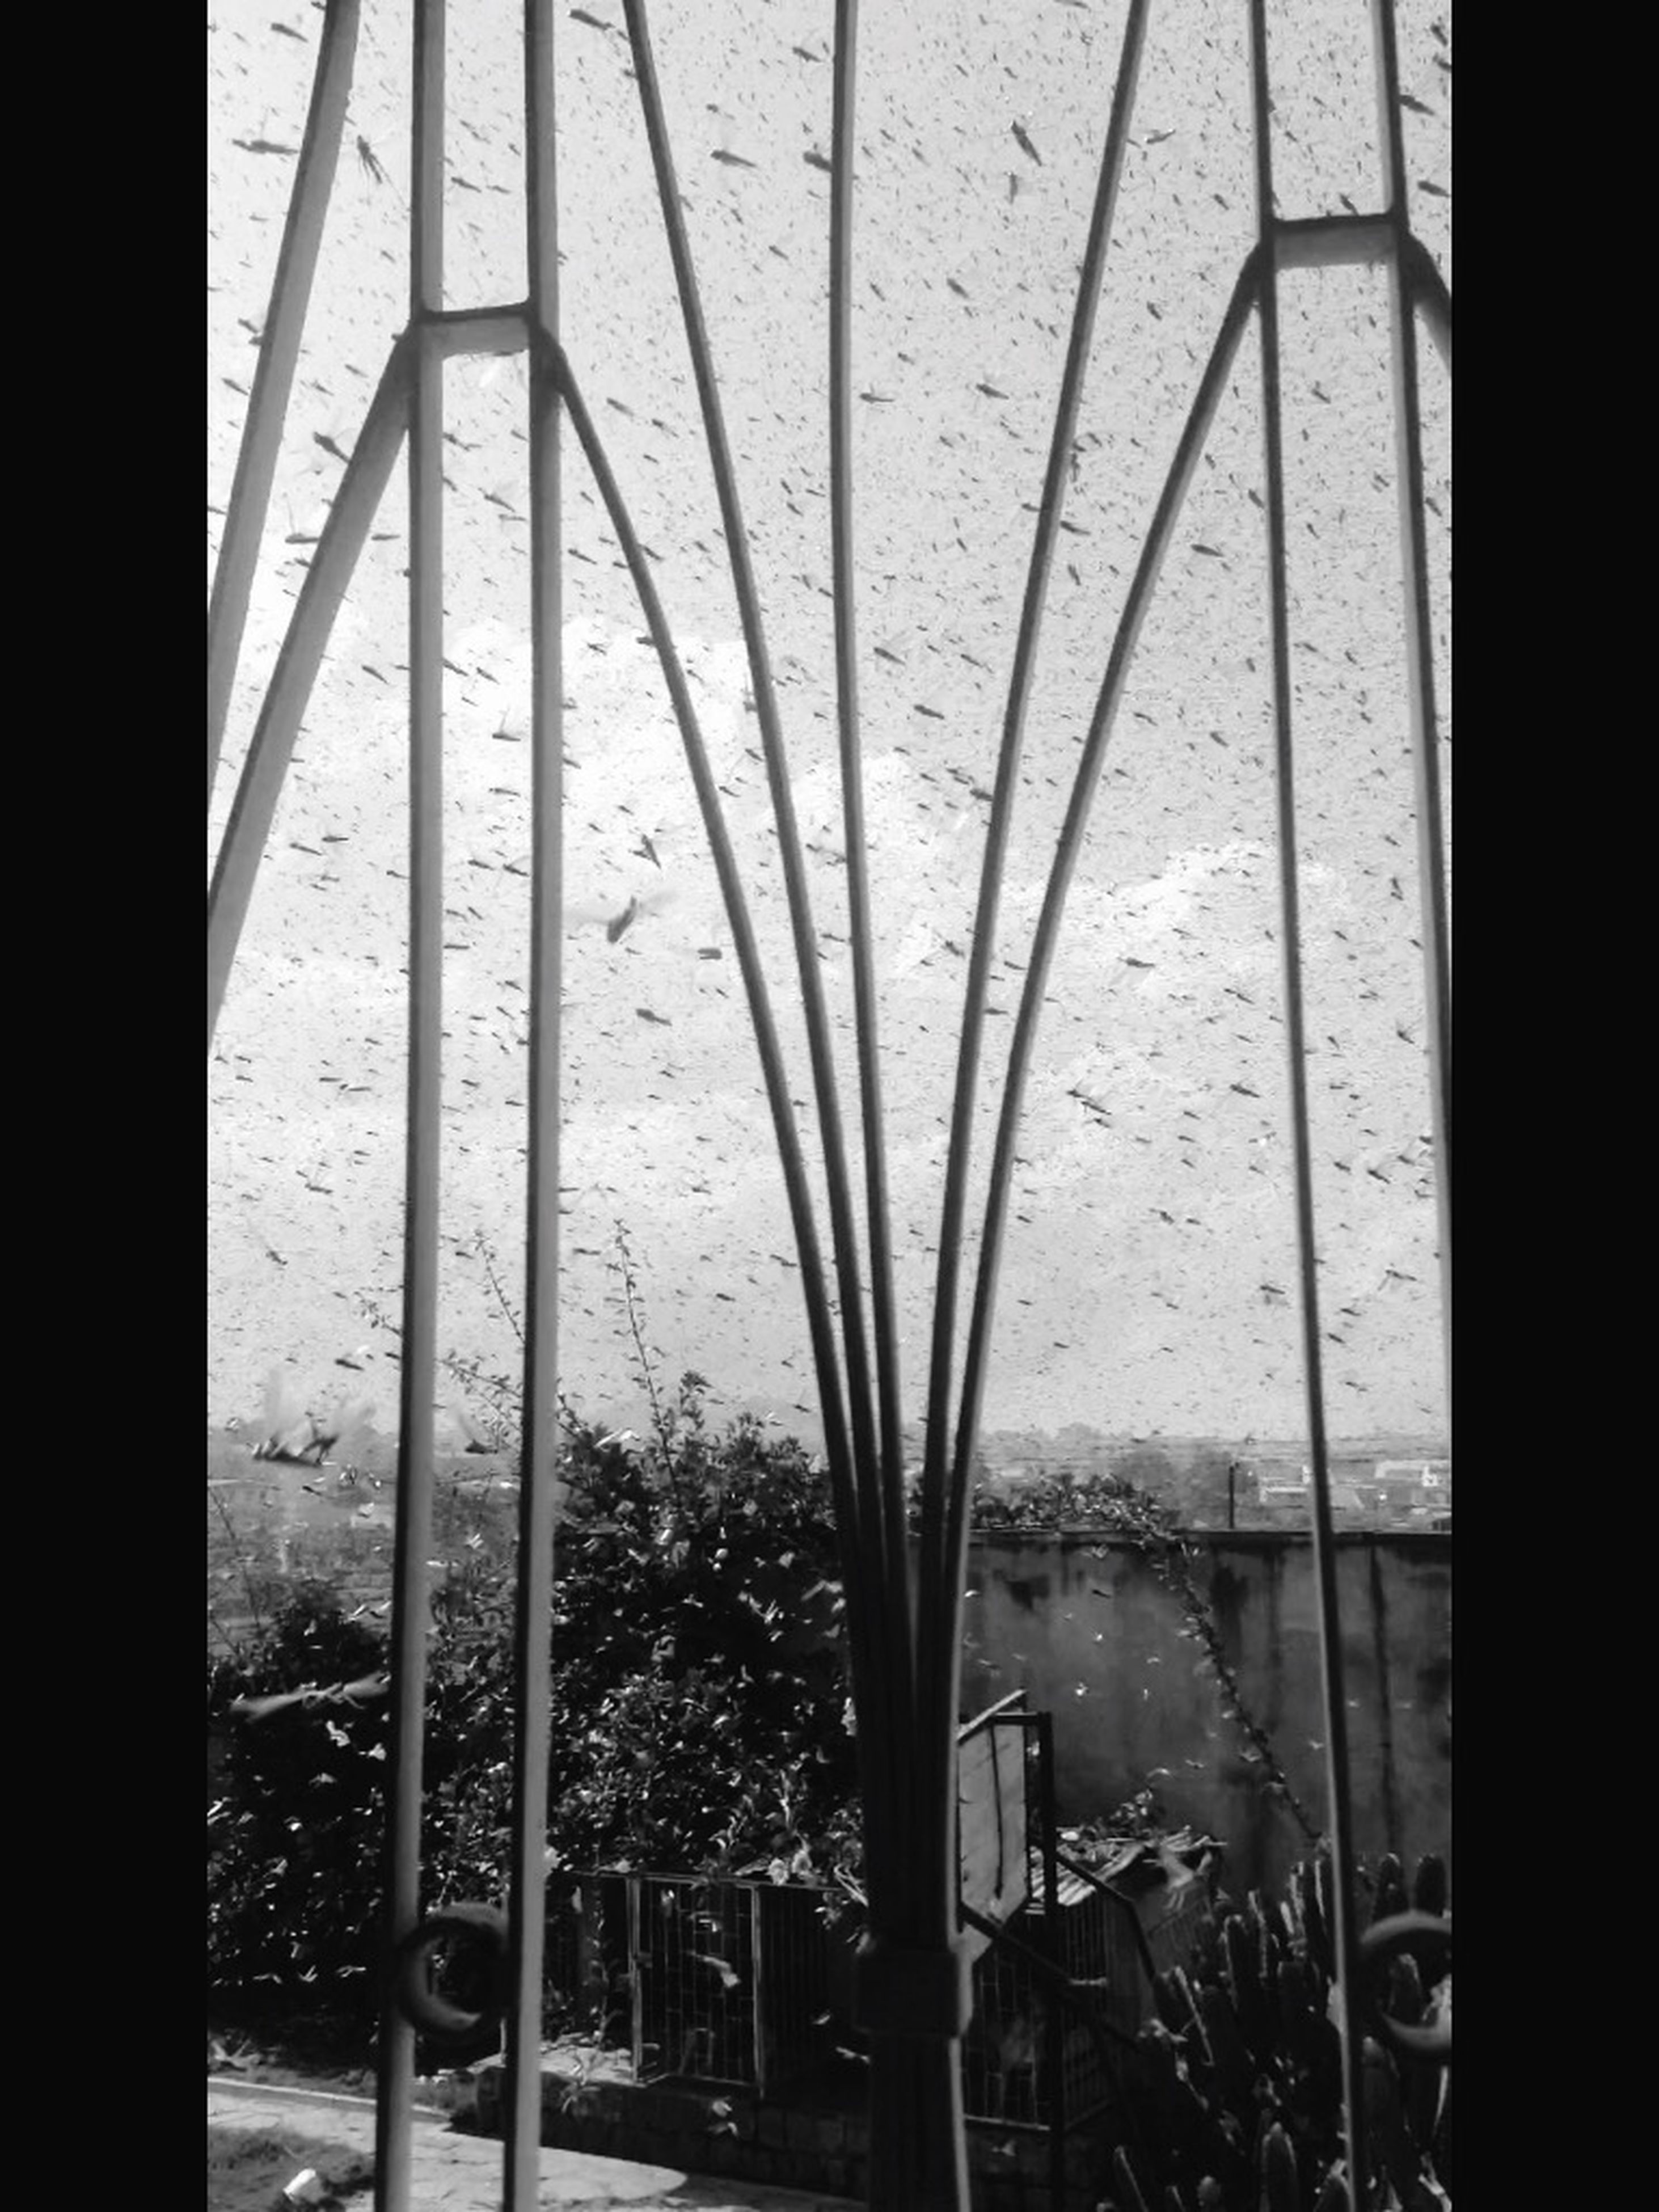 indoors, water, window, transparent, glass - material, wet, metal, reflection, close-up, day, drop, railing, glass, sunlight, no people, rain, pattern, high angle view, nature, built structure